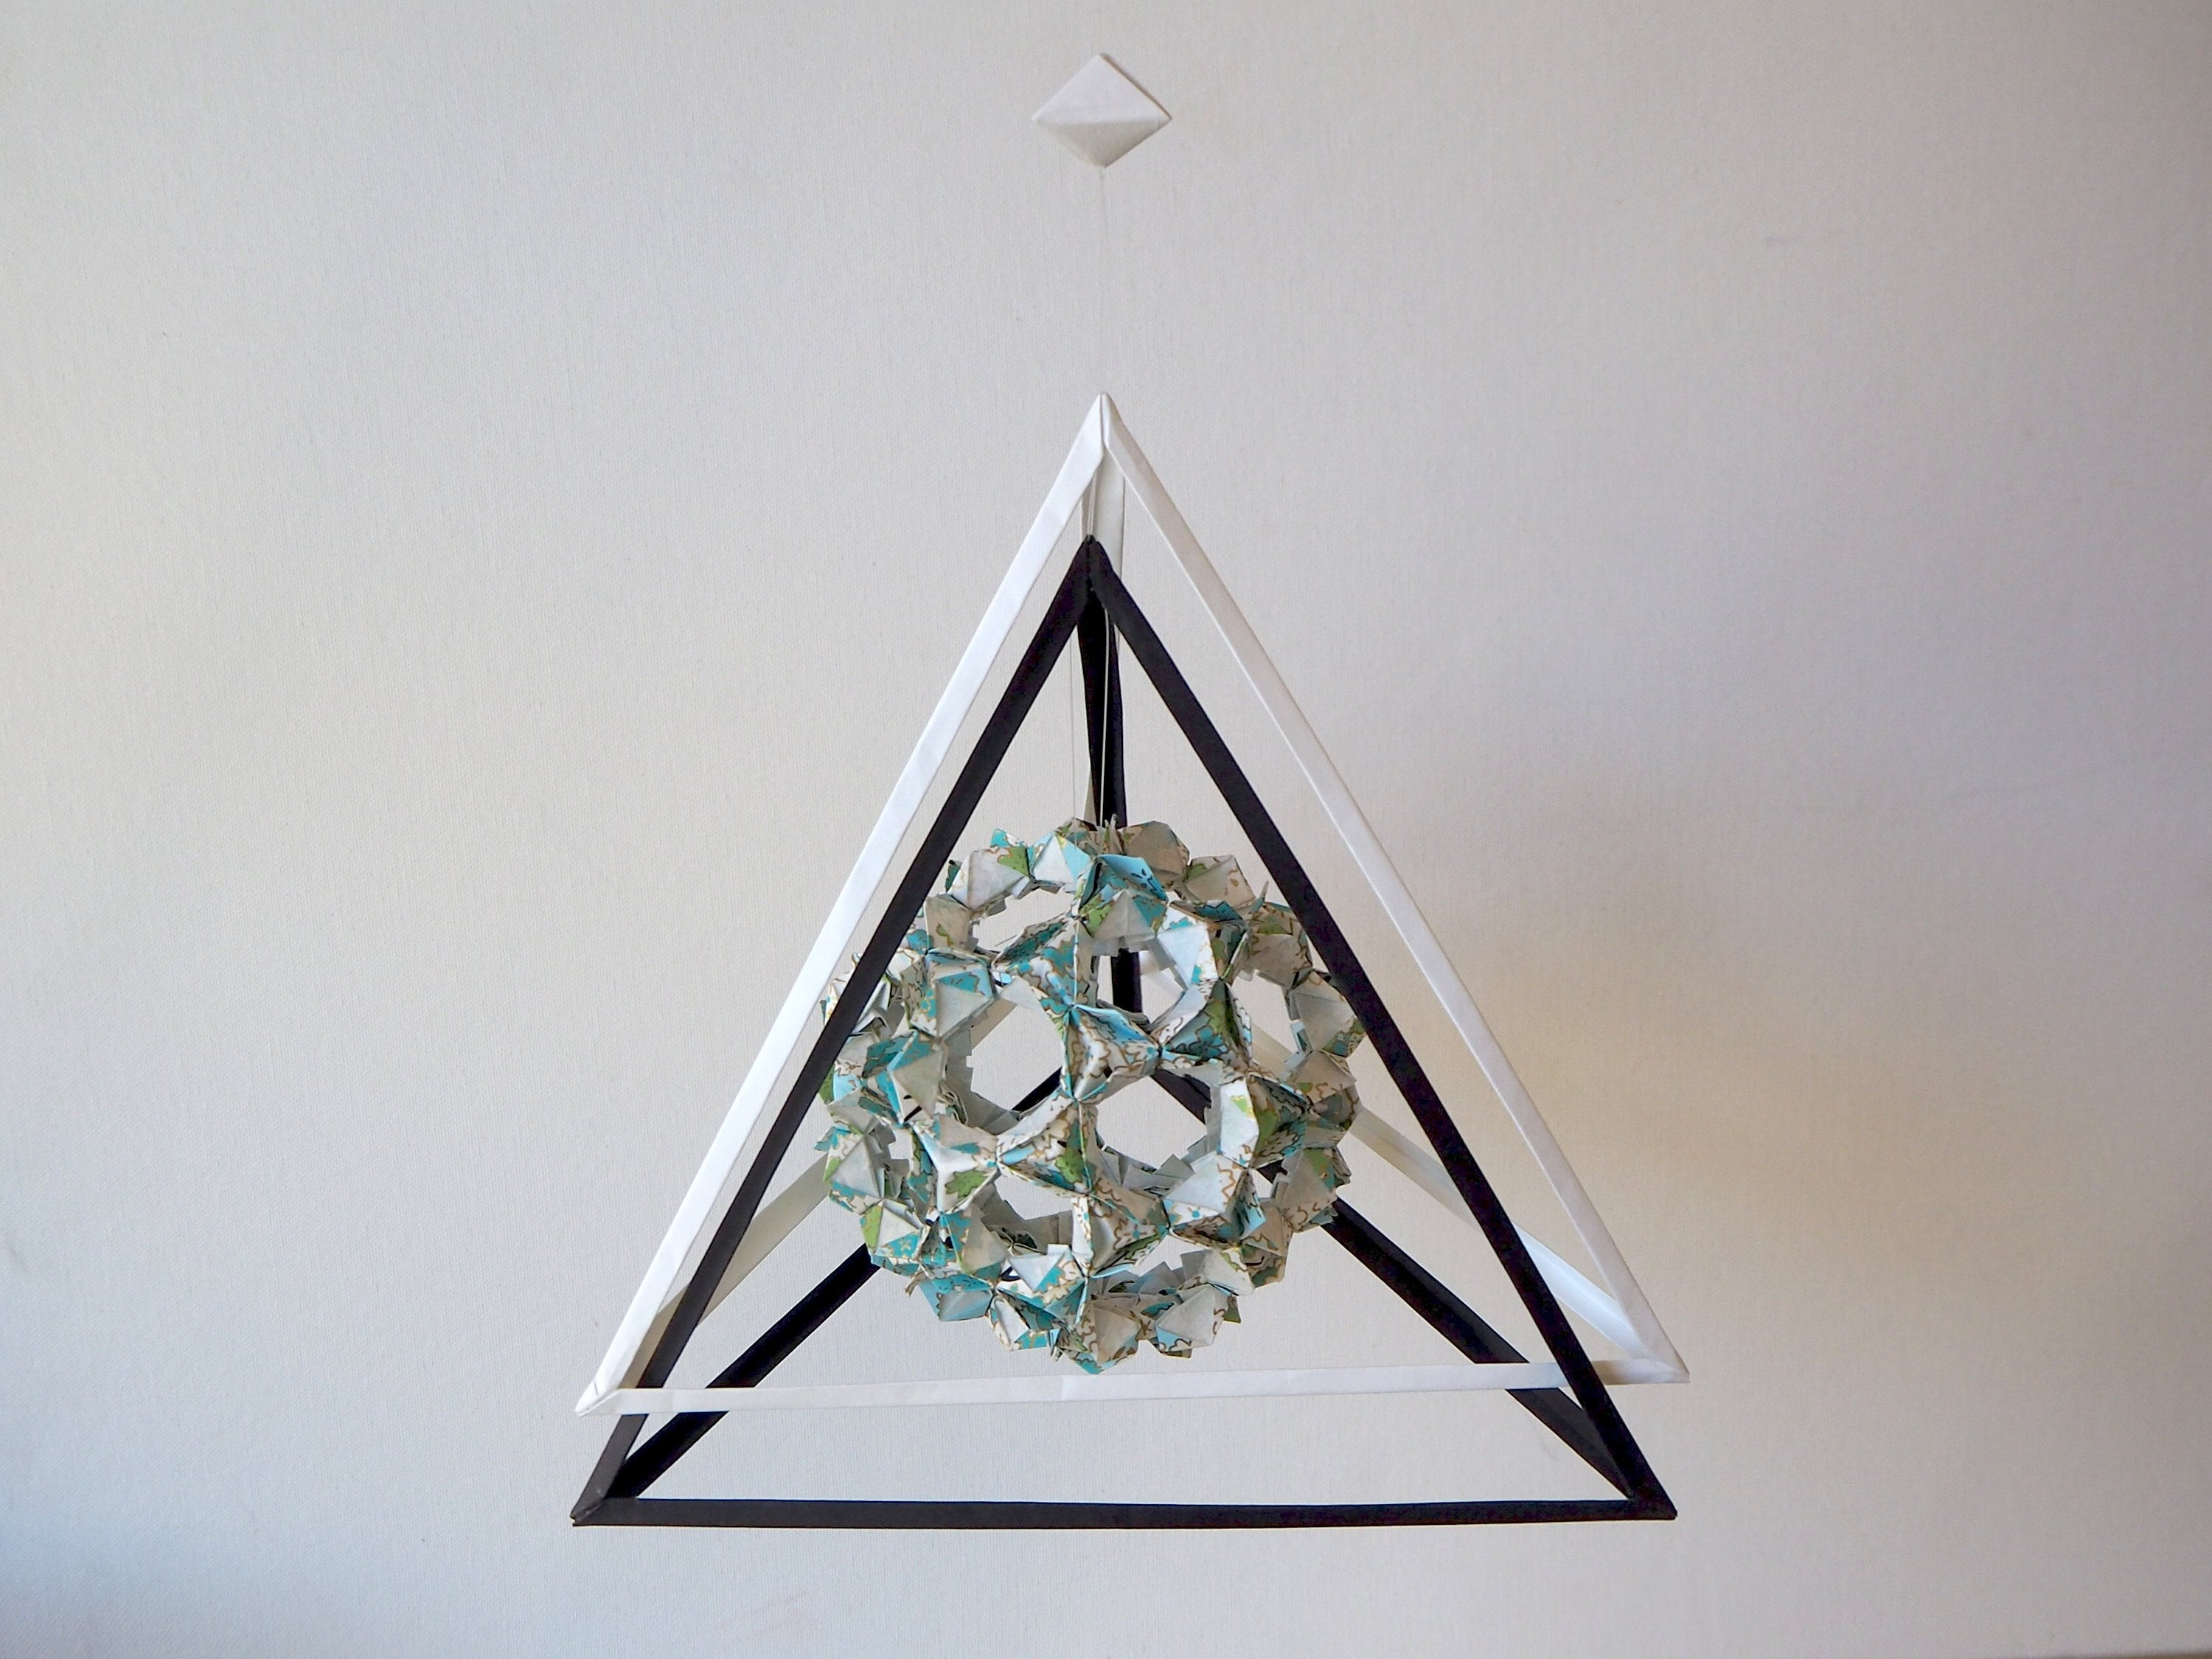 origami bucky ball pyramid mobile, room decoration